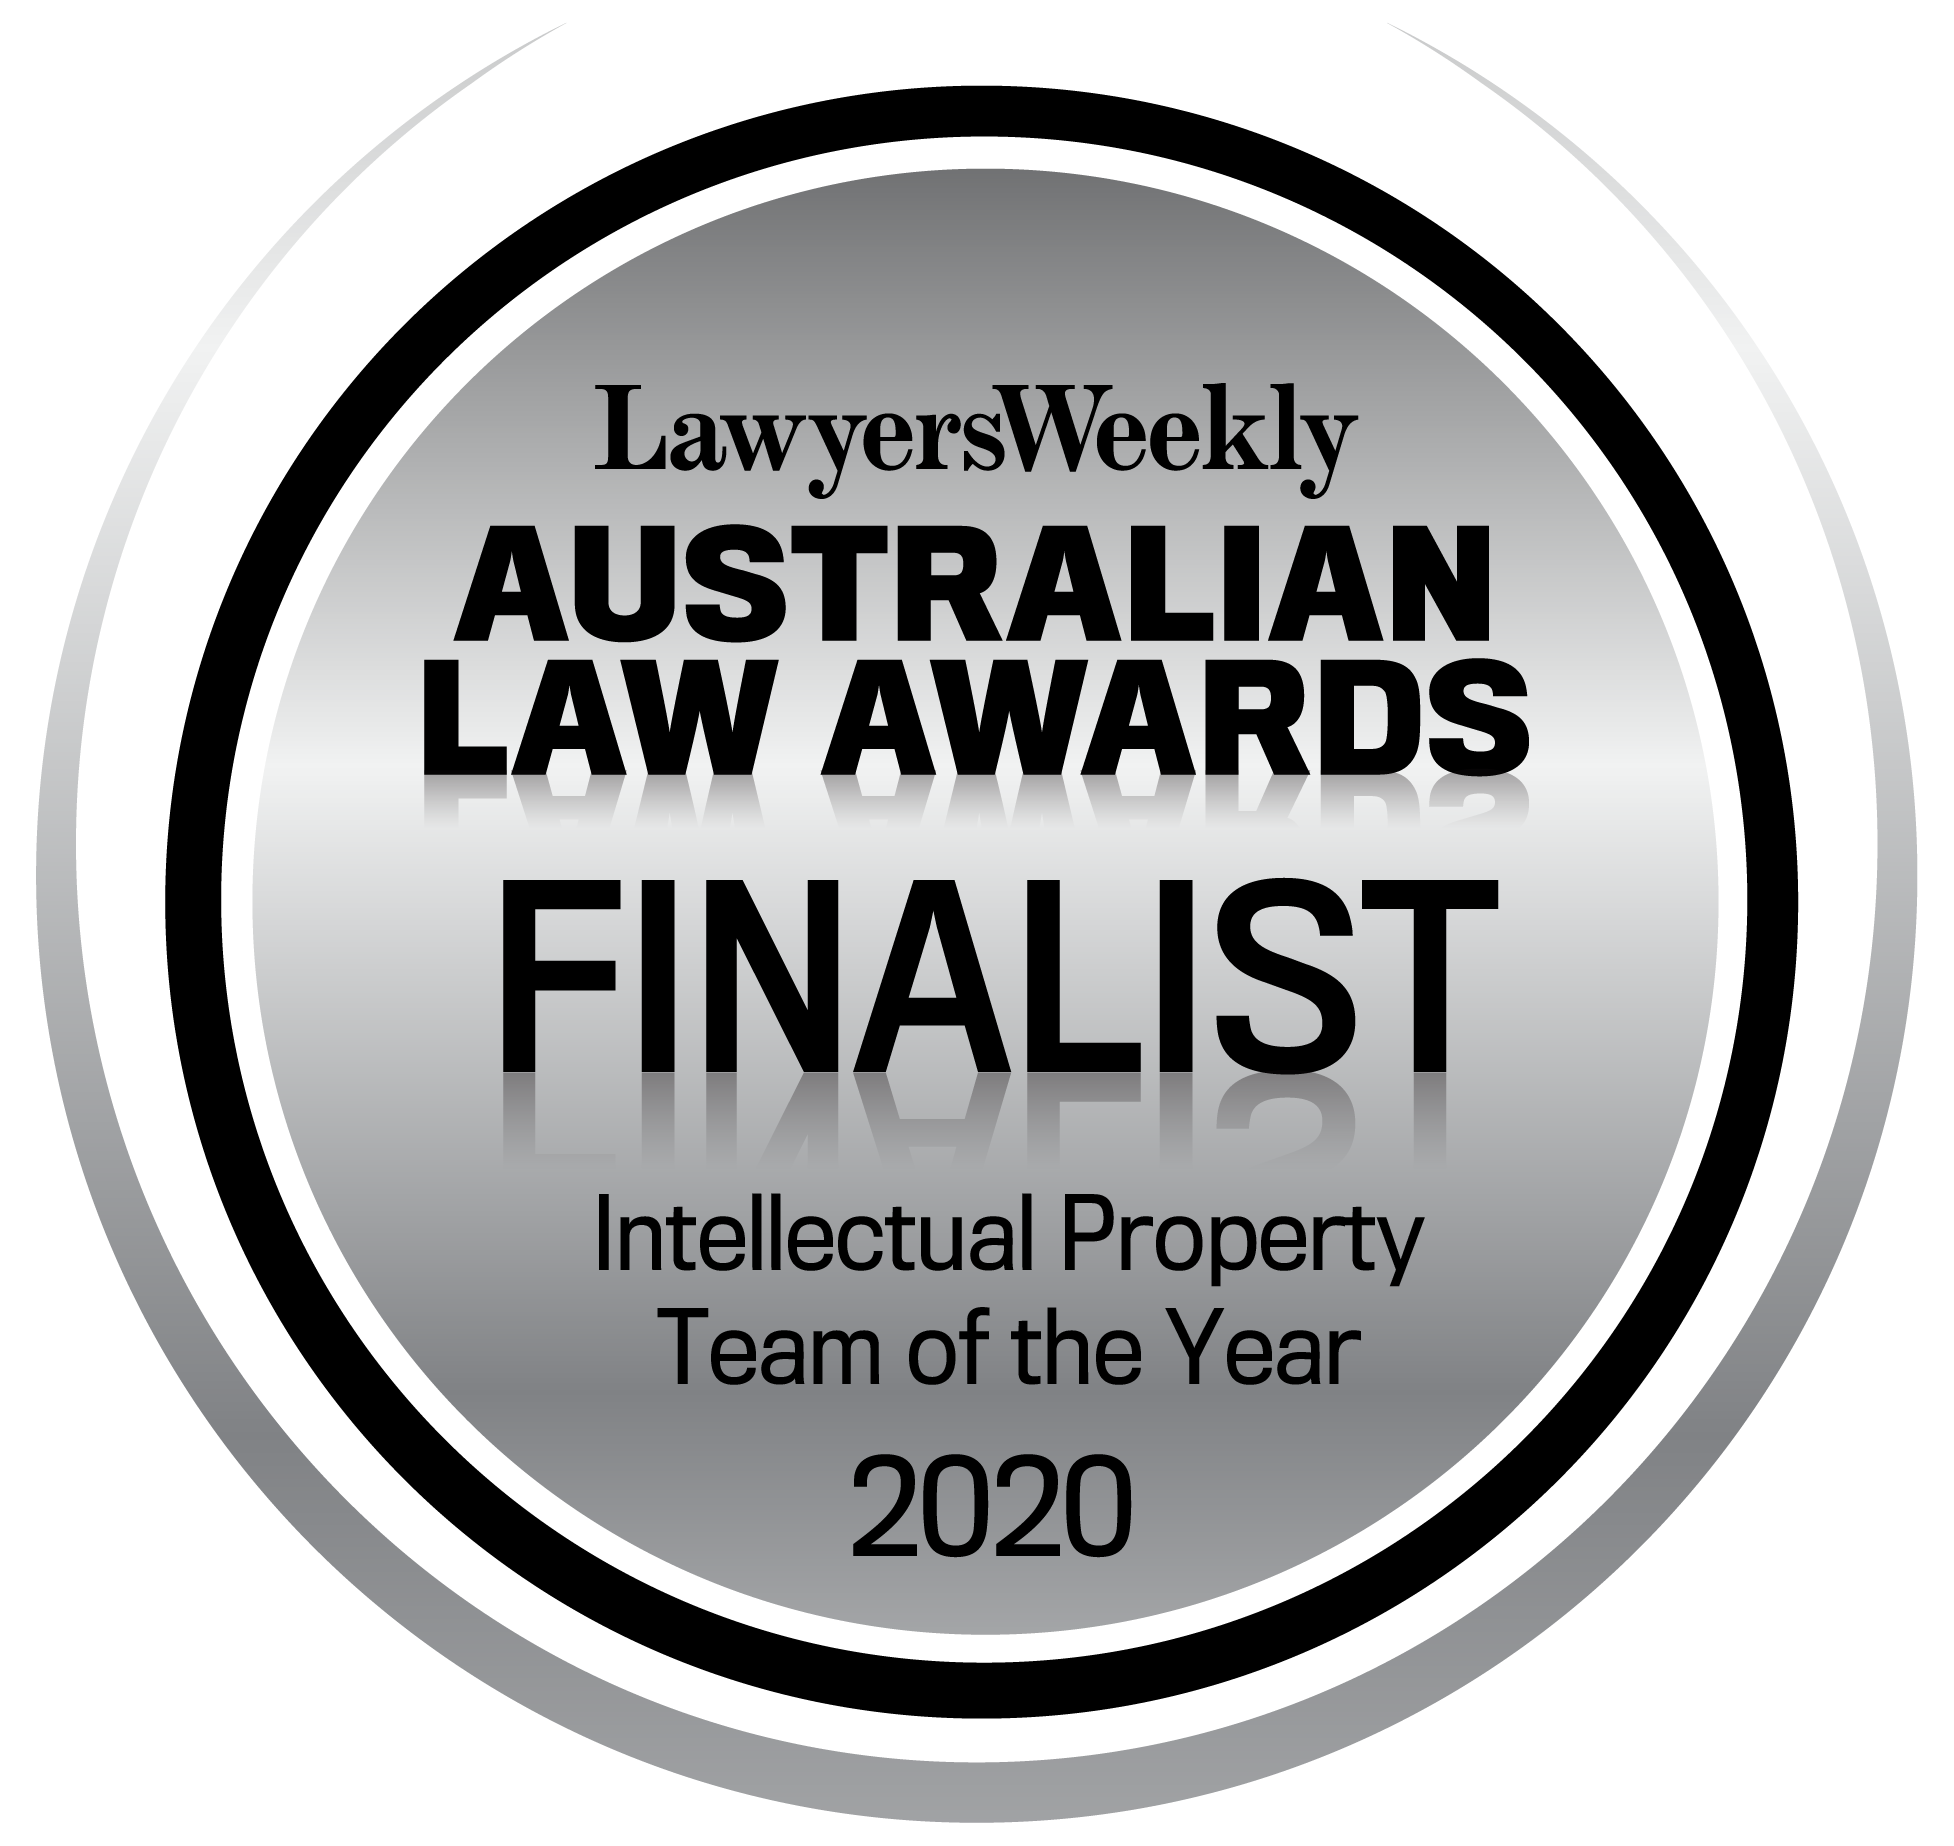 ALA_2020_Finalist_Intellectual Property Team of the Year